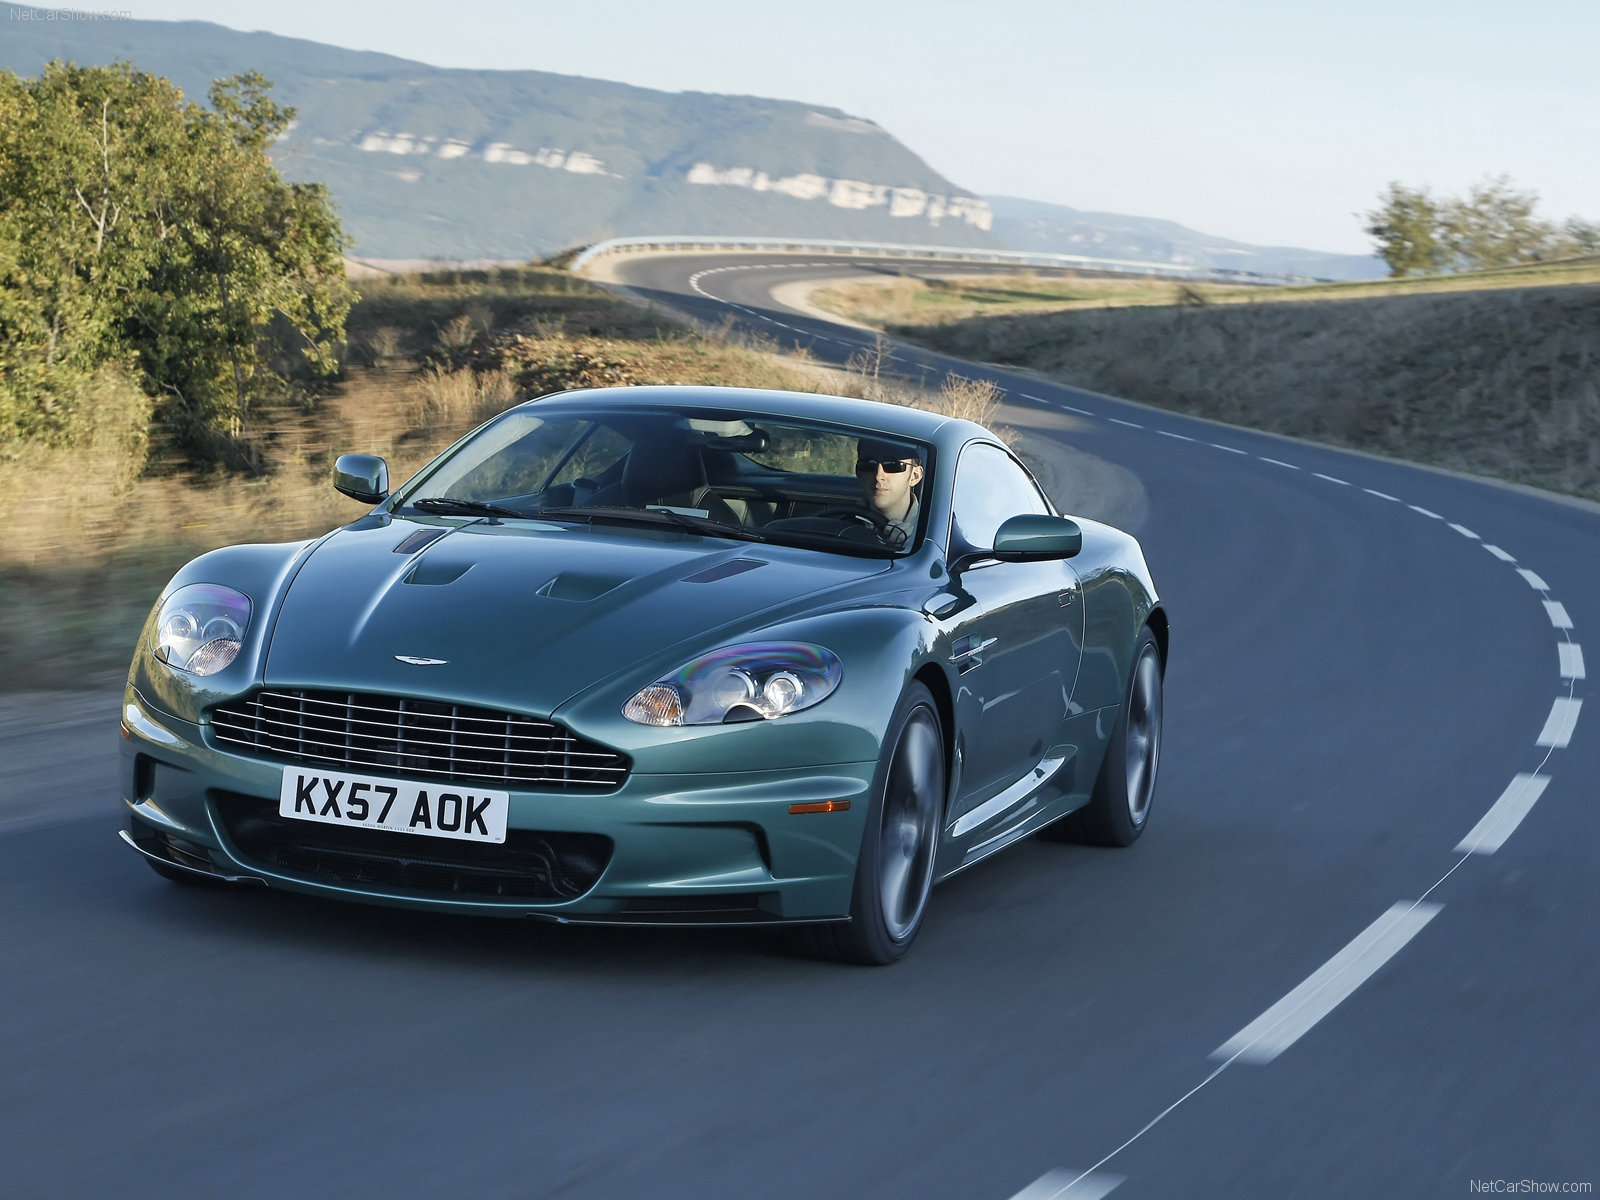 Aston Martin DBS Racing Green photo #49833